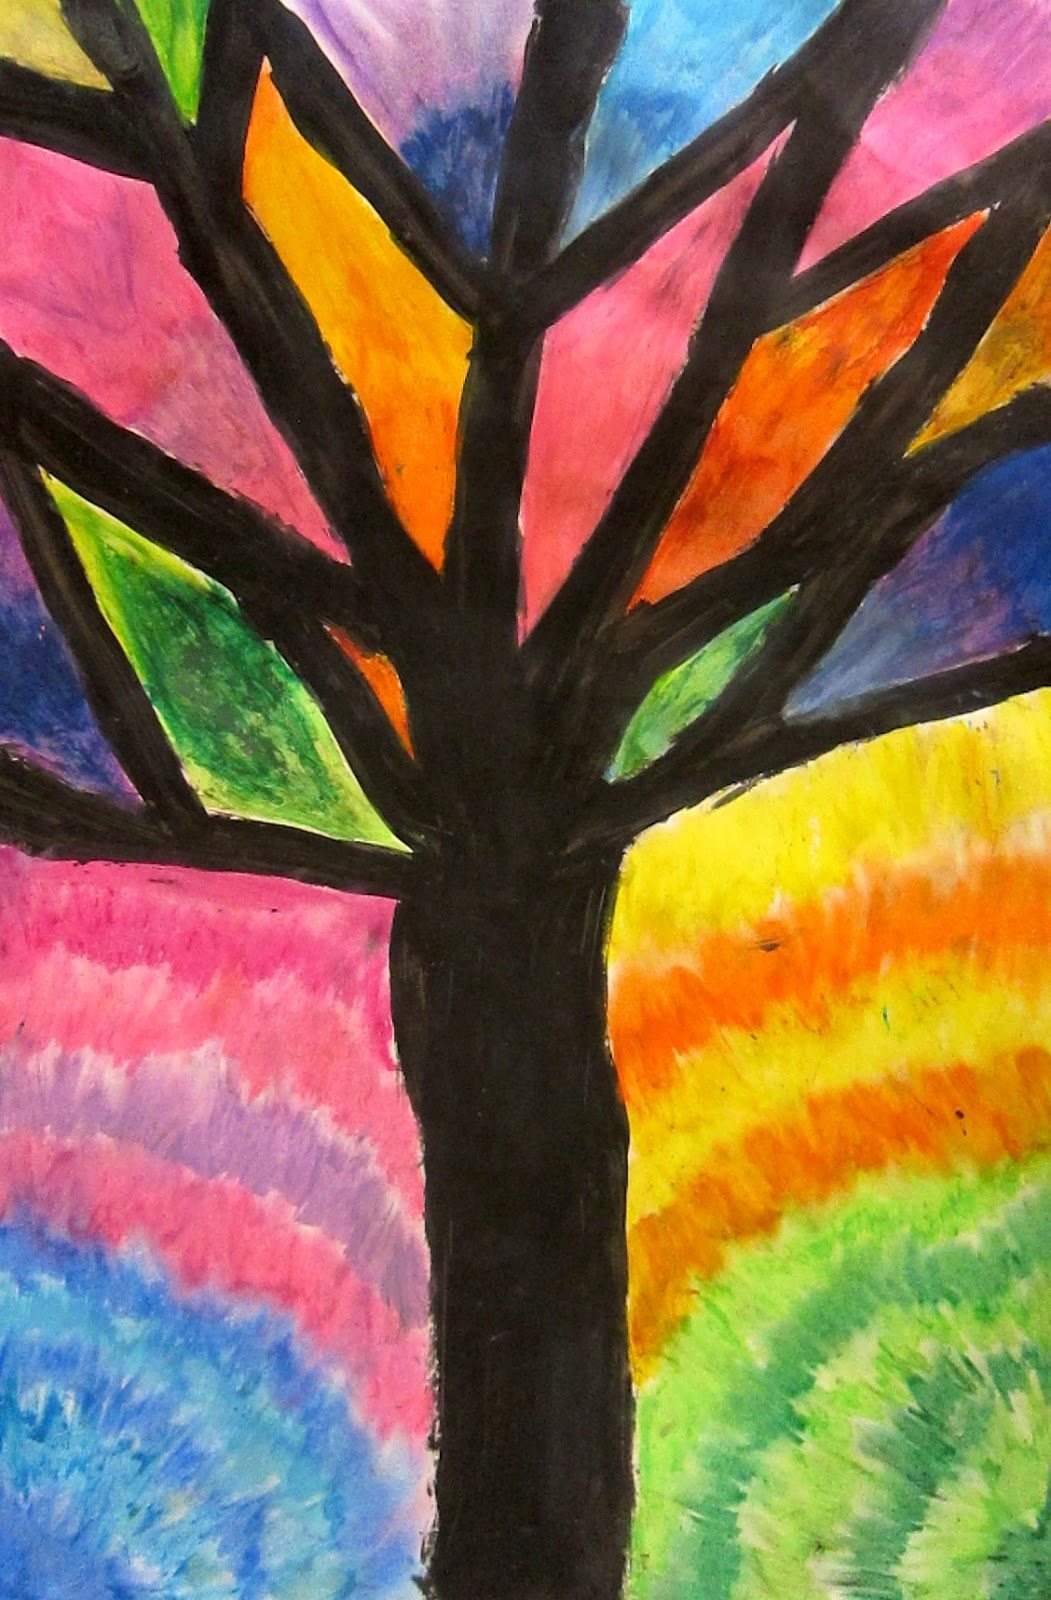 How To Paint With Oil Pastels Videos